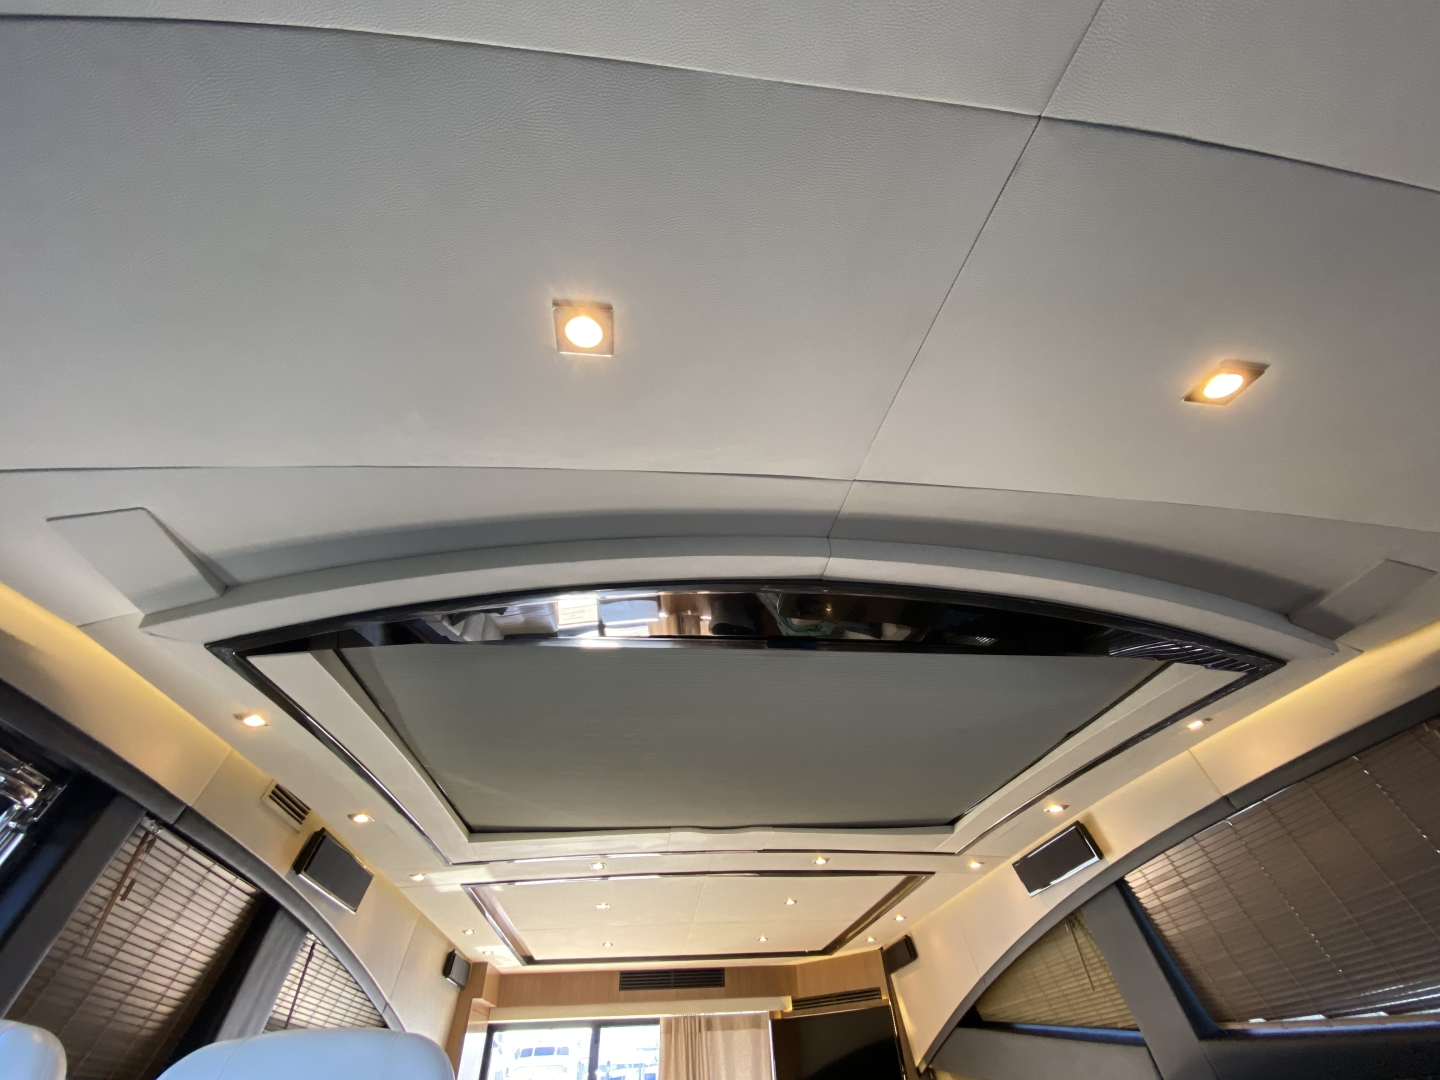 Sea Ray-L650 Express 2016-Cozy Fort Lauderdale-Florida-United States-2016 Sea Ray L650 Moon Roof-1367780 | Thumbnail